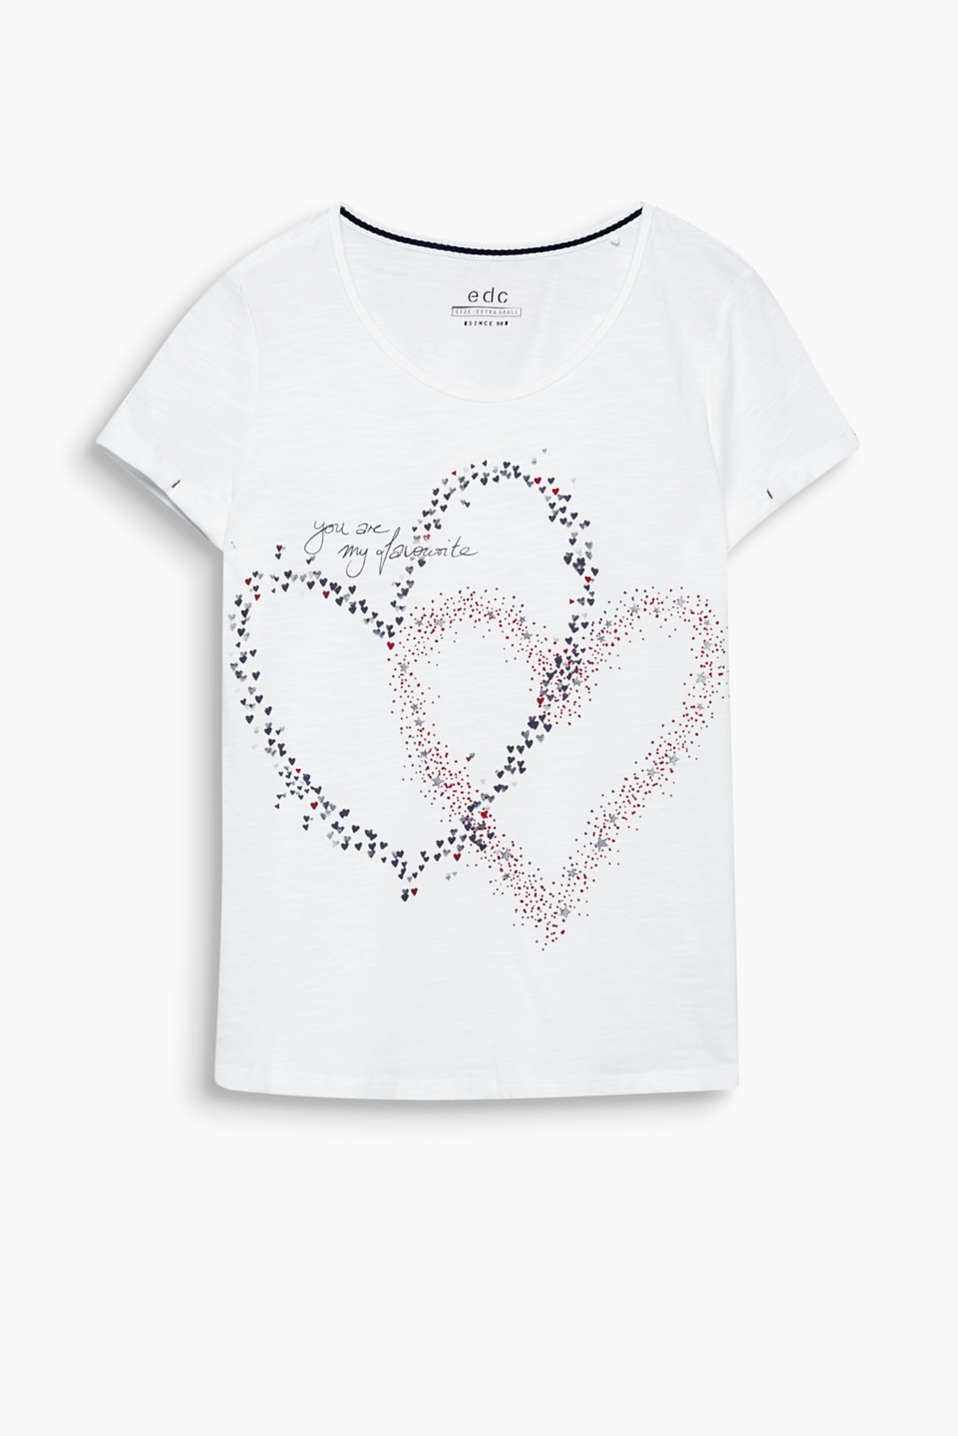 This top is extremely adorable, and not just for Valentines Day, in slub jersey with different printed hearts!